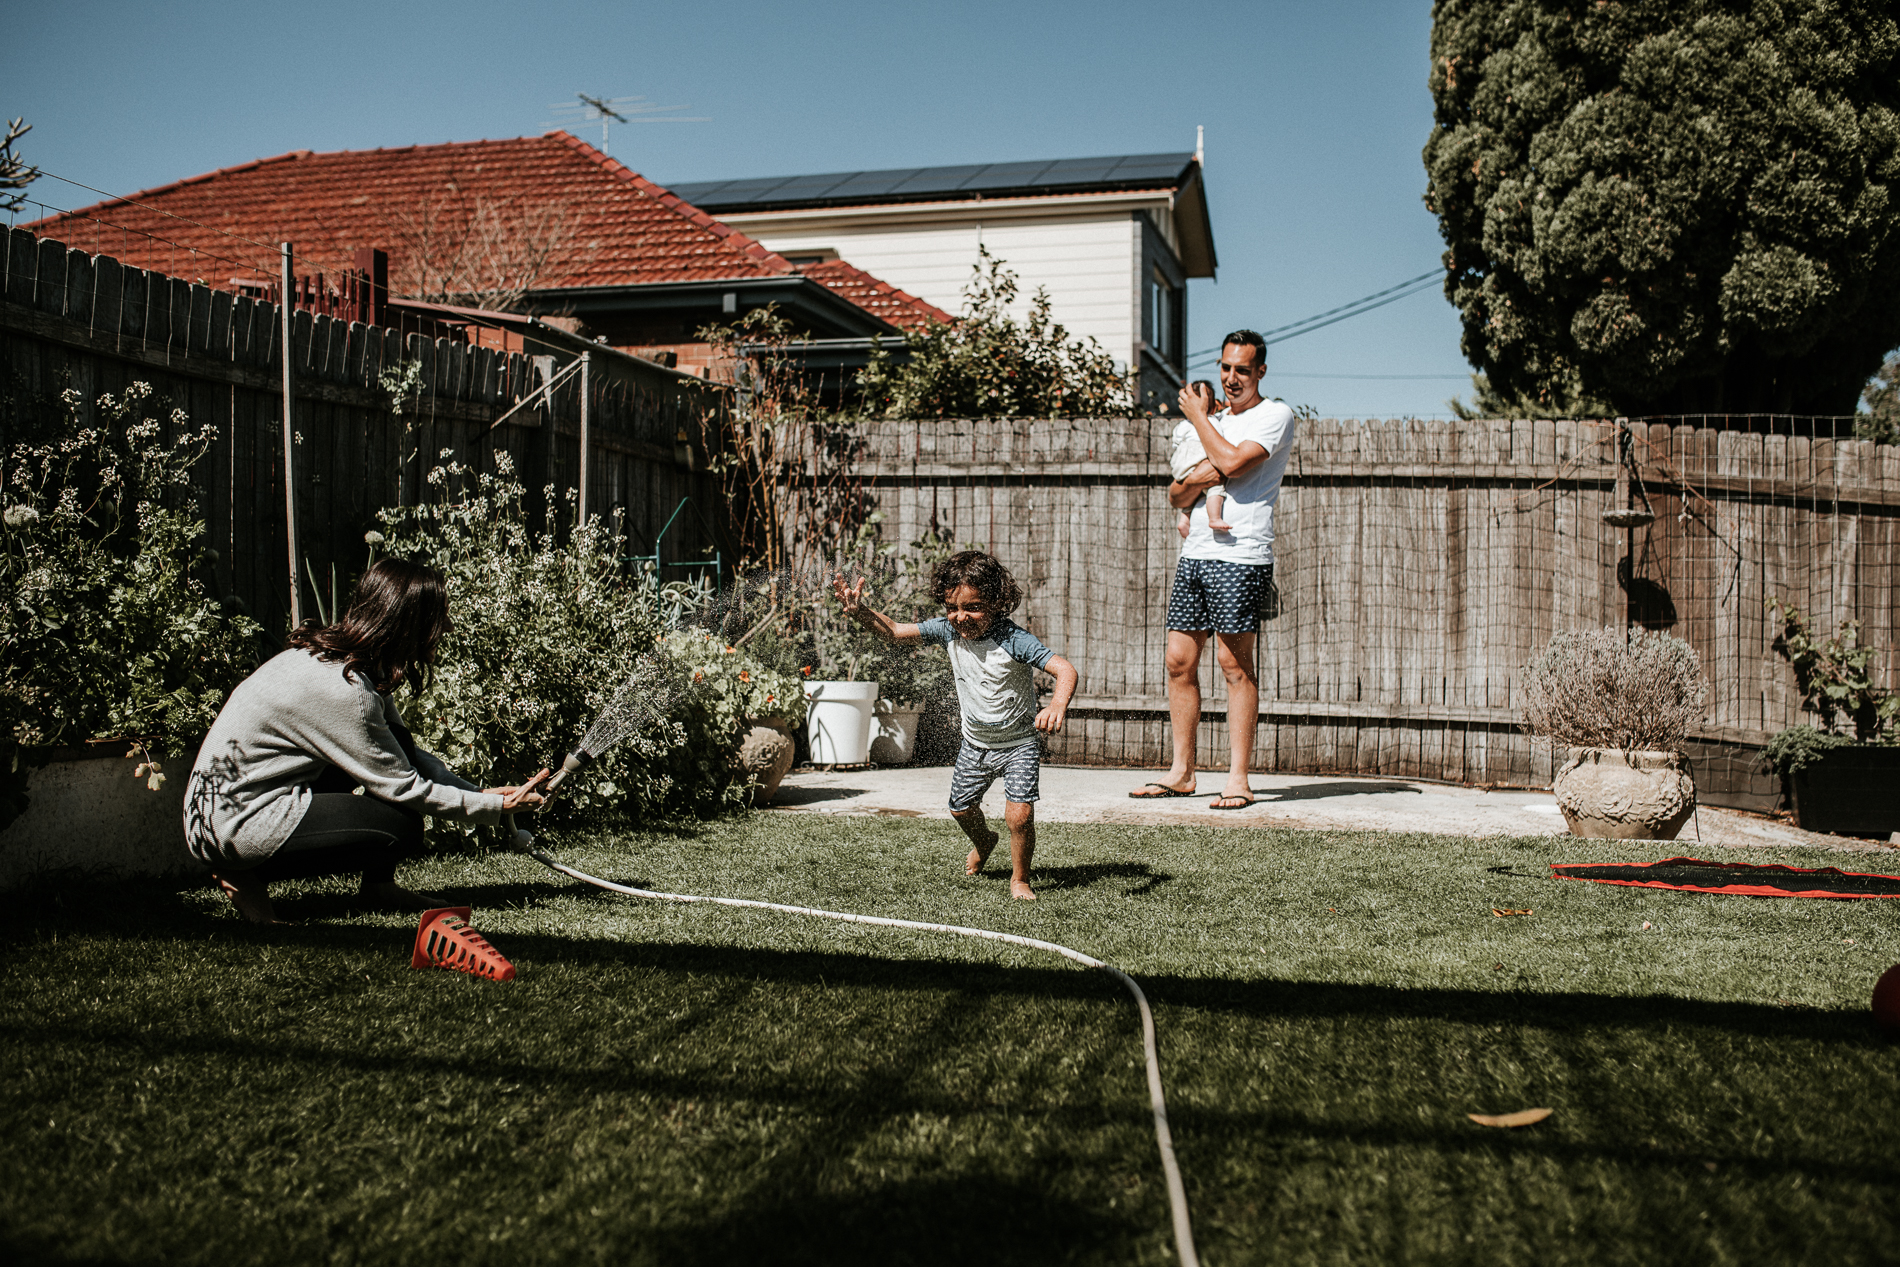 20180915_Sydney_Family_Photographer_ 6273.jpg